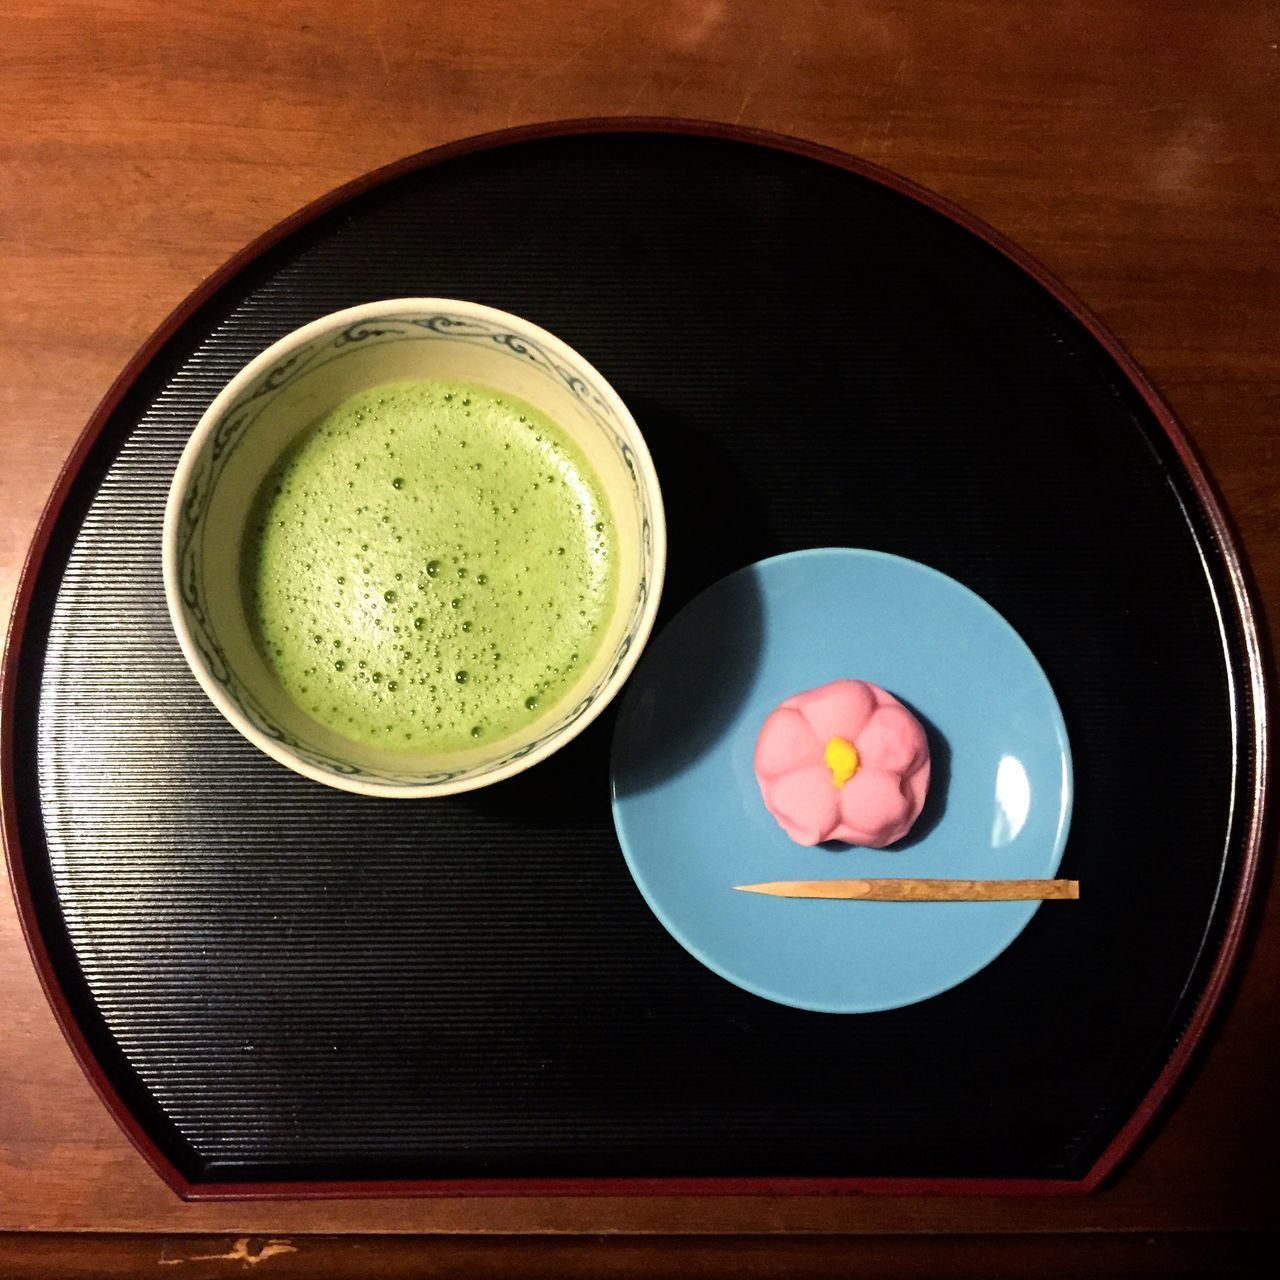 powdered green tea. Green Tea Bowl Food And Drink Healthy Eating Tea Ceremony Freshness Food Tea - Hot Drink Close-up Plate Indoors  Ready-to-eat Drink Cultures No People